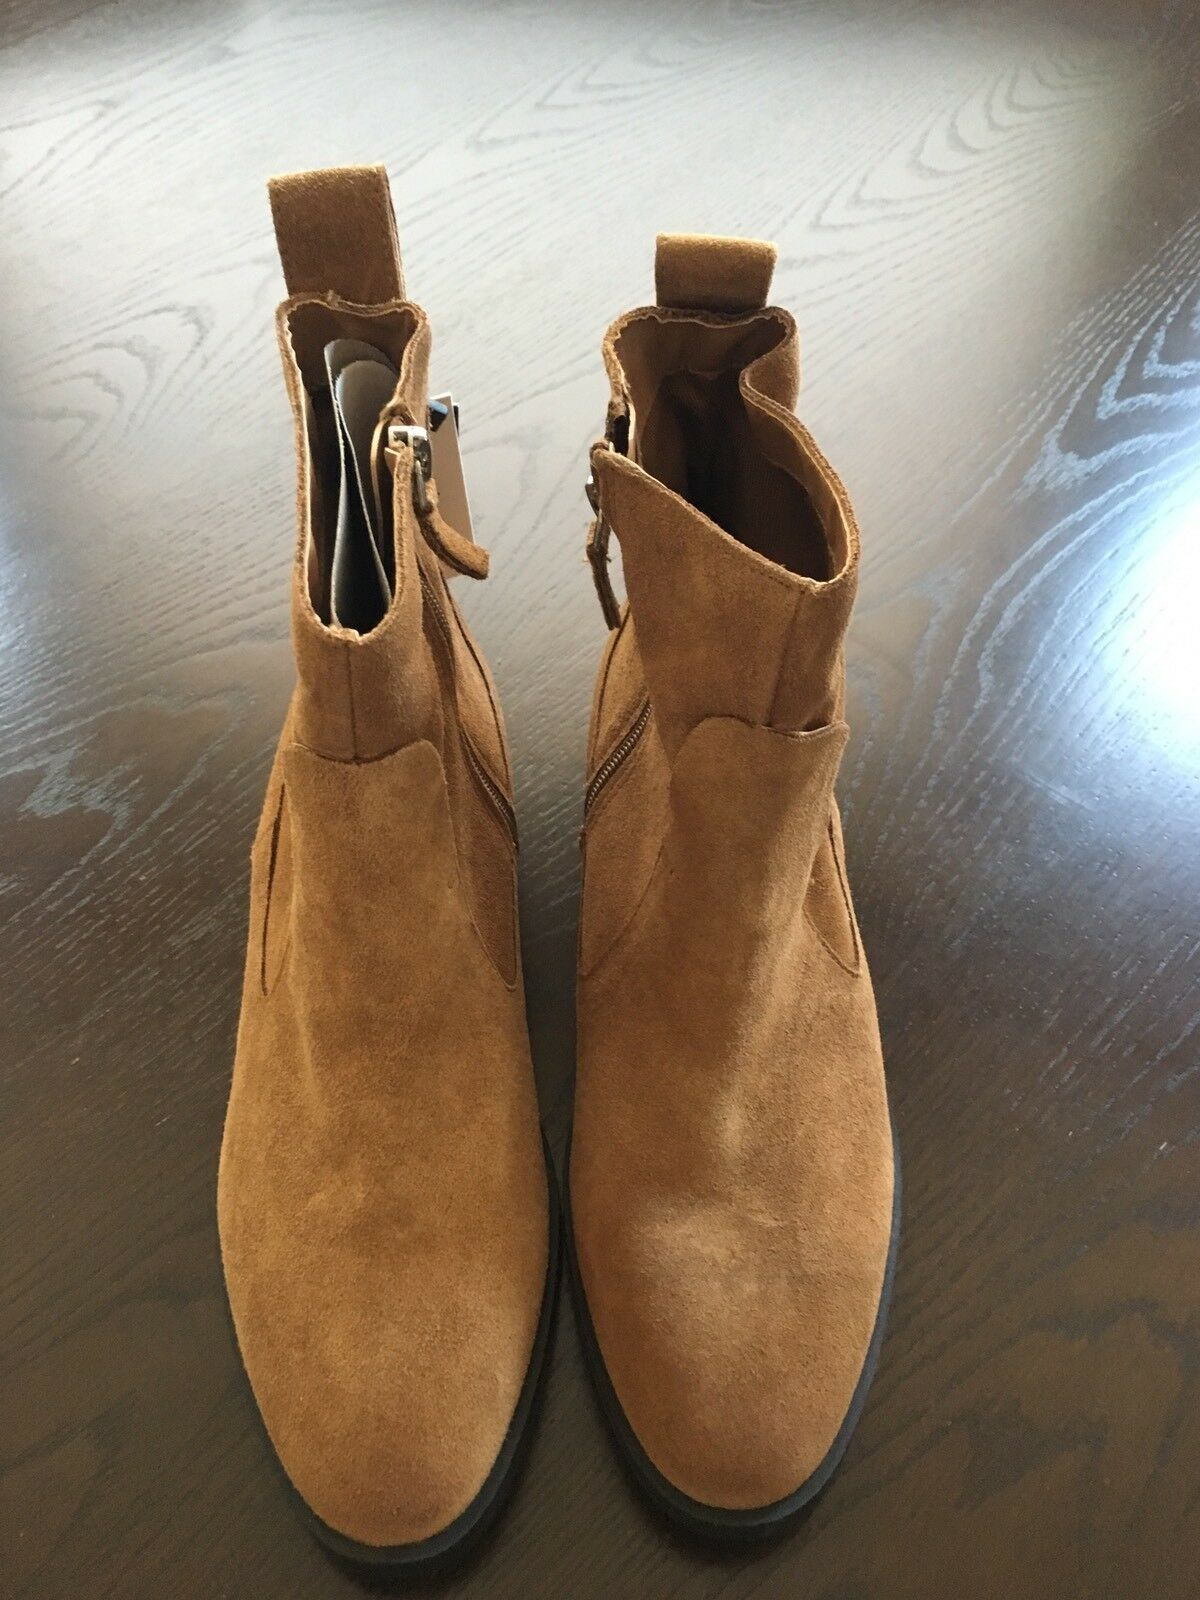 NWT Zara FLAT LEATHER ANKLE BOOTS Size 39, US8, 7177 101 100% Cow Leather